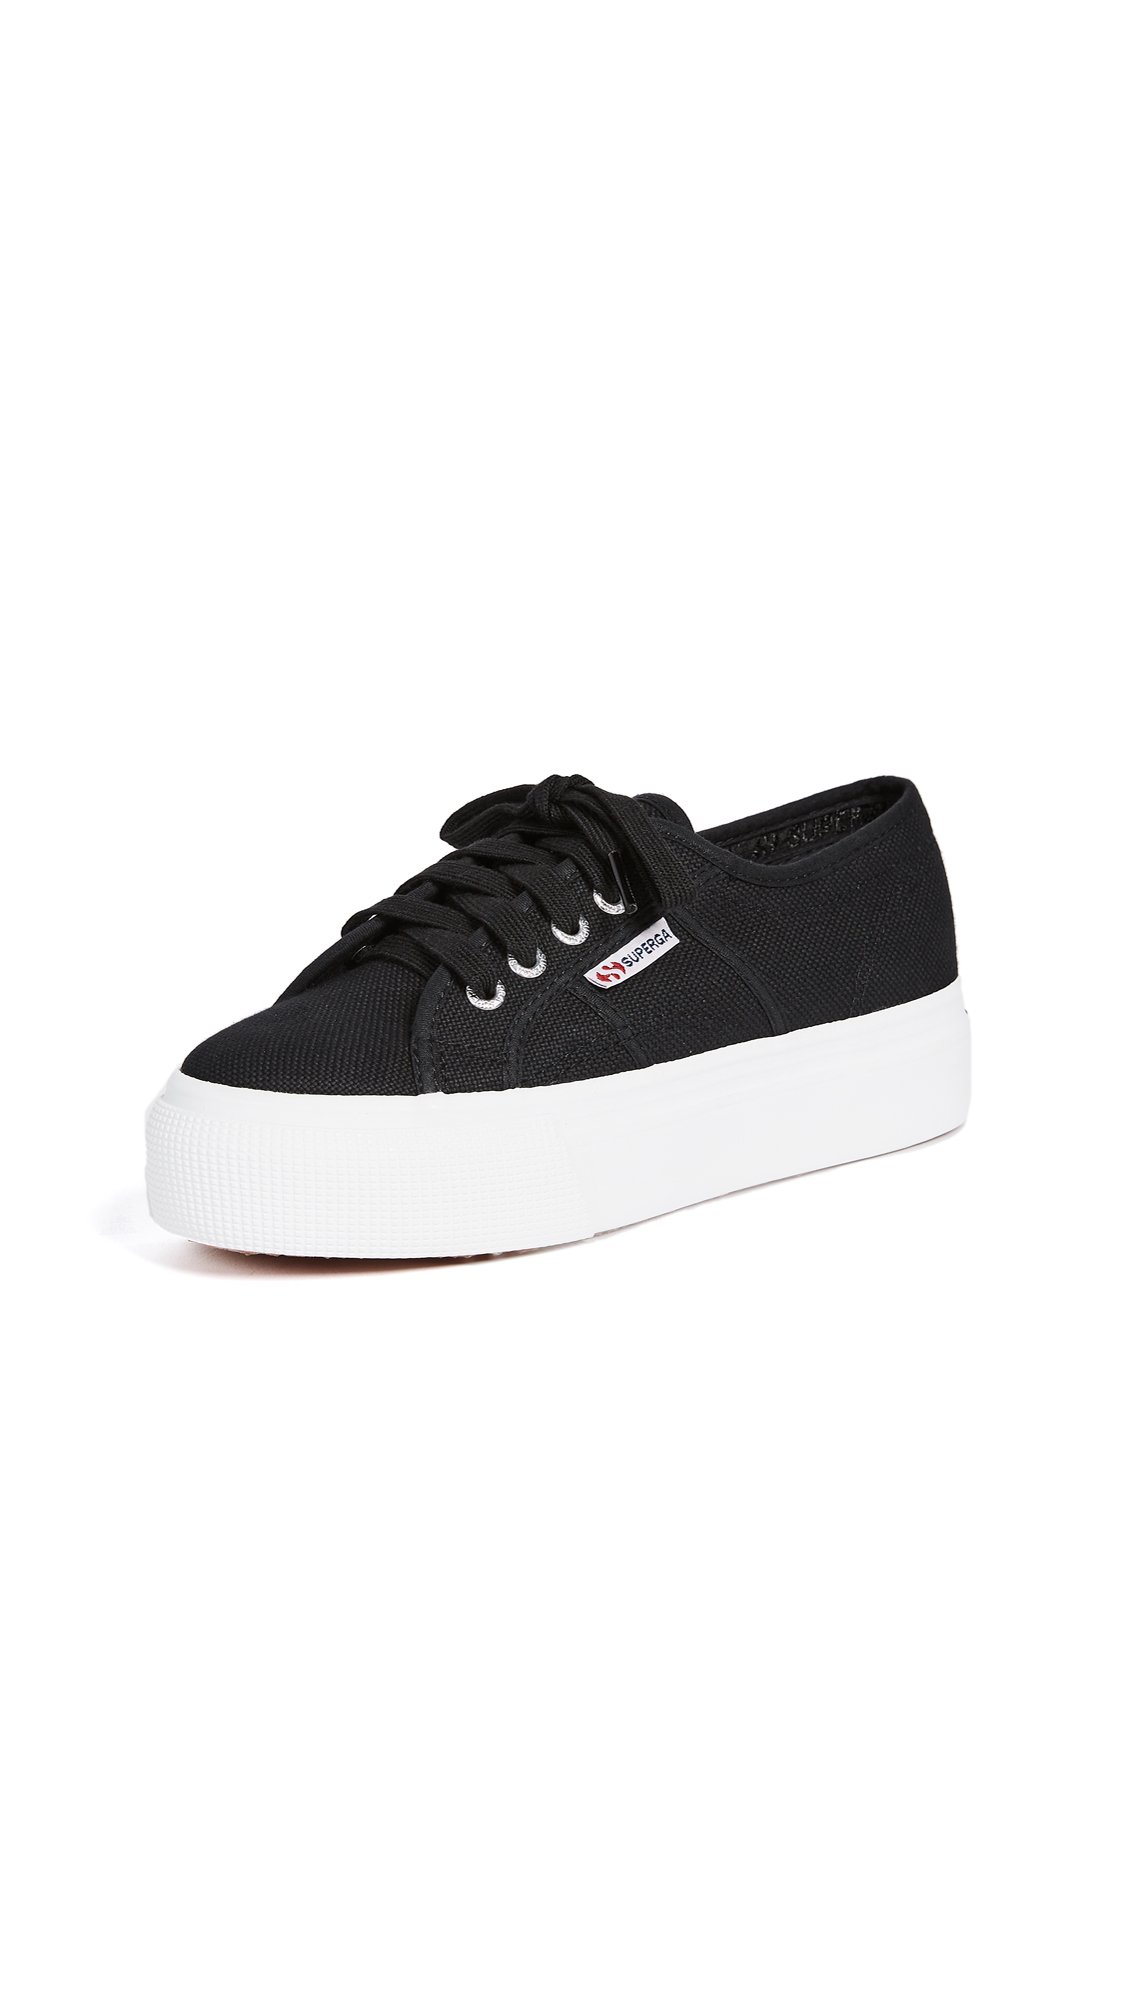 Superga 2790 ACOTW Platform Sneakers - Black/White